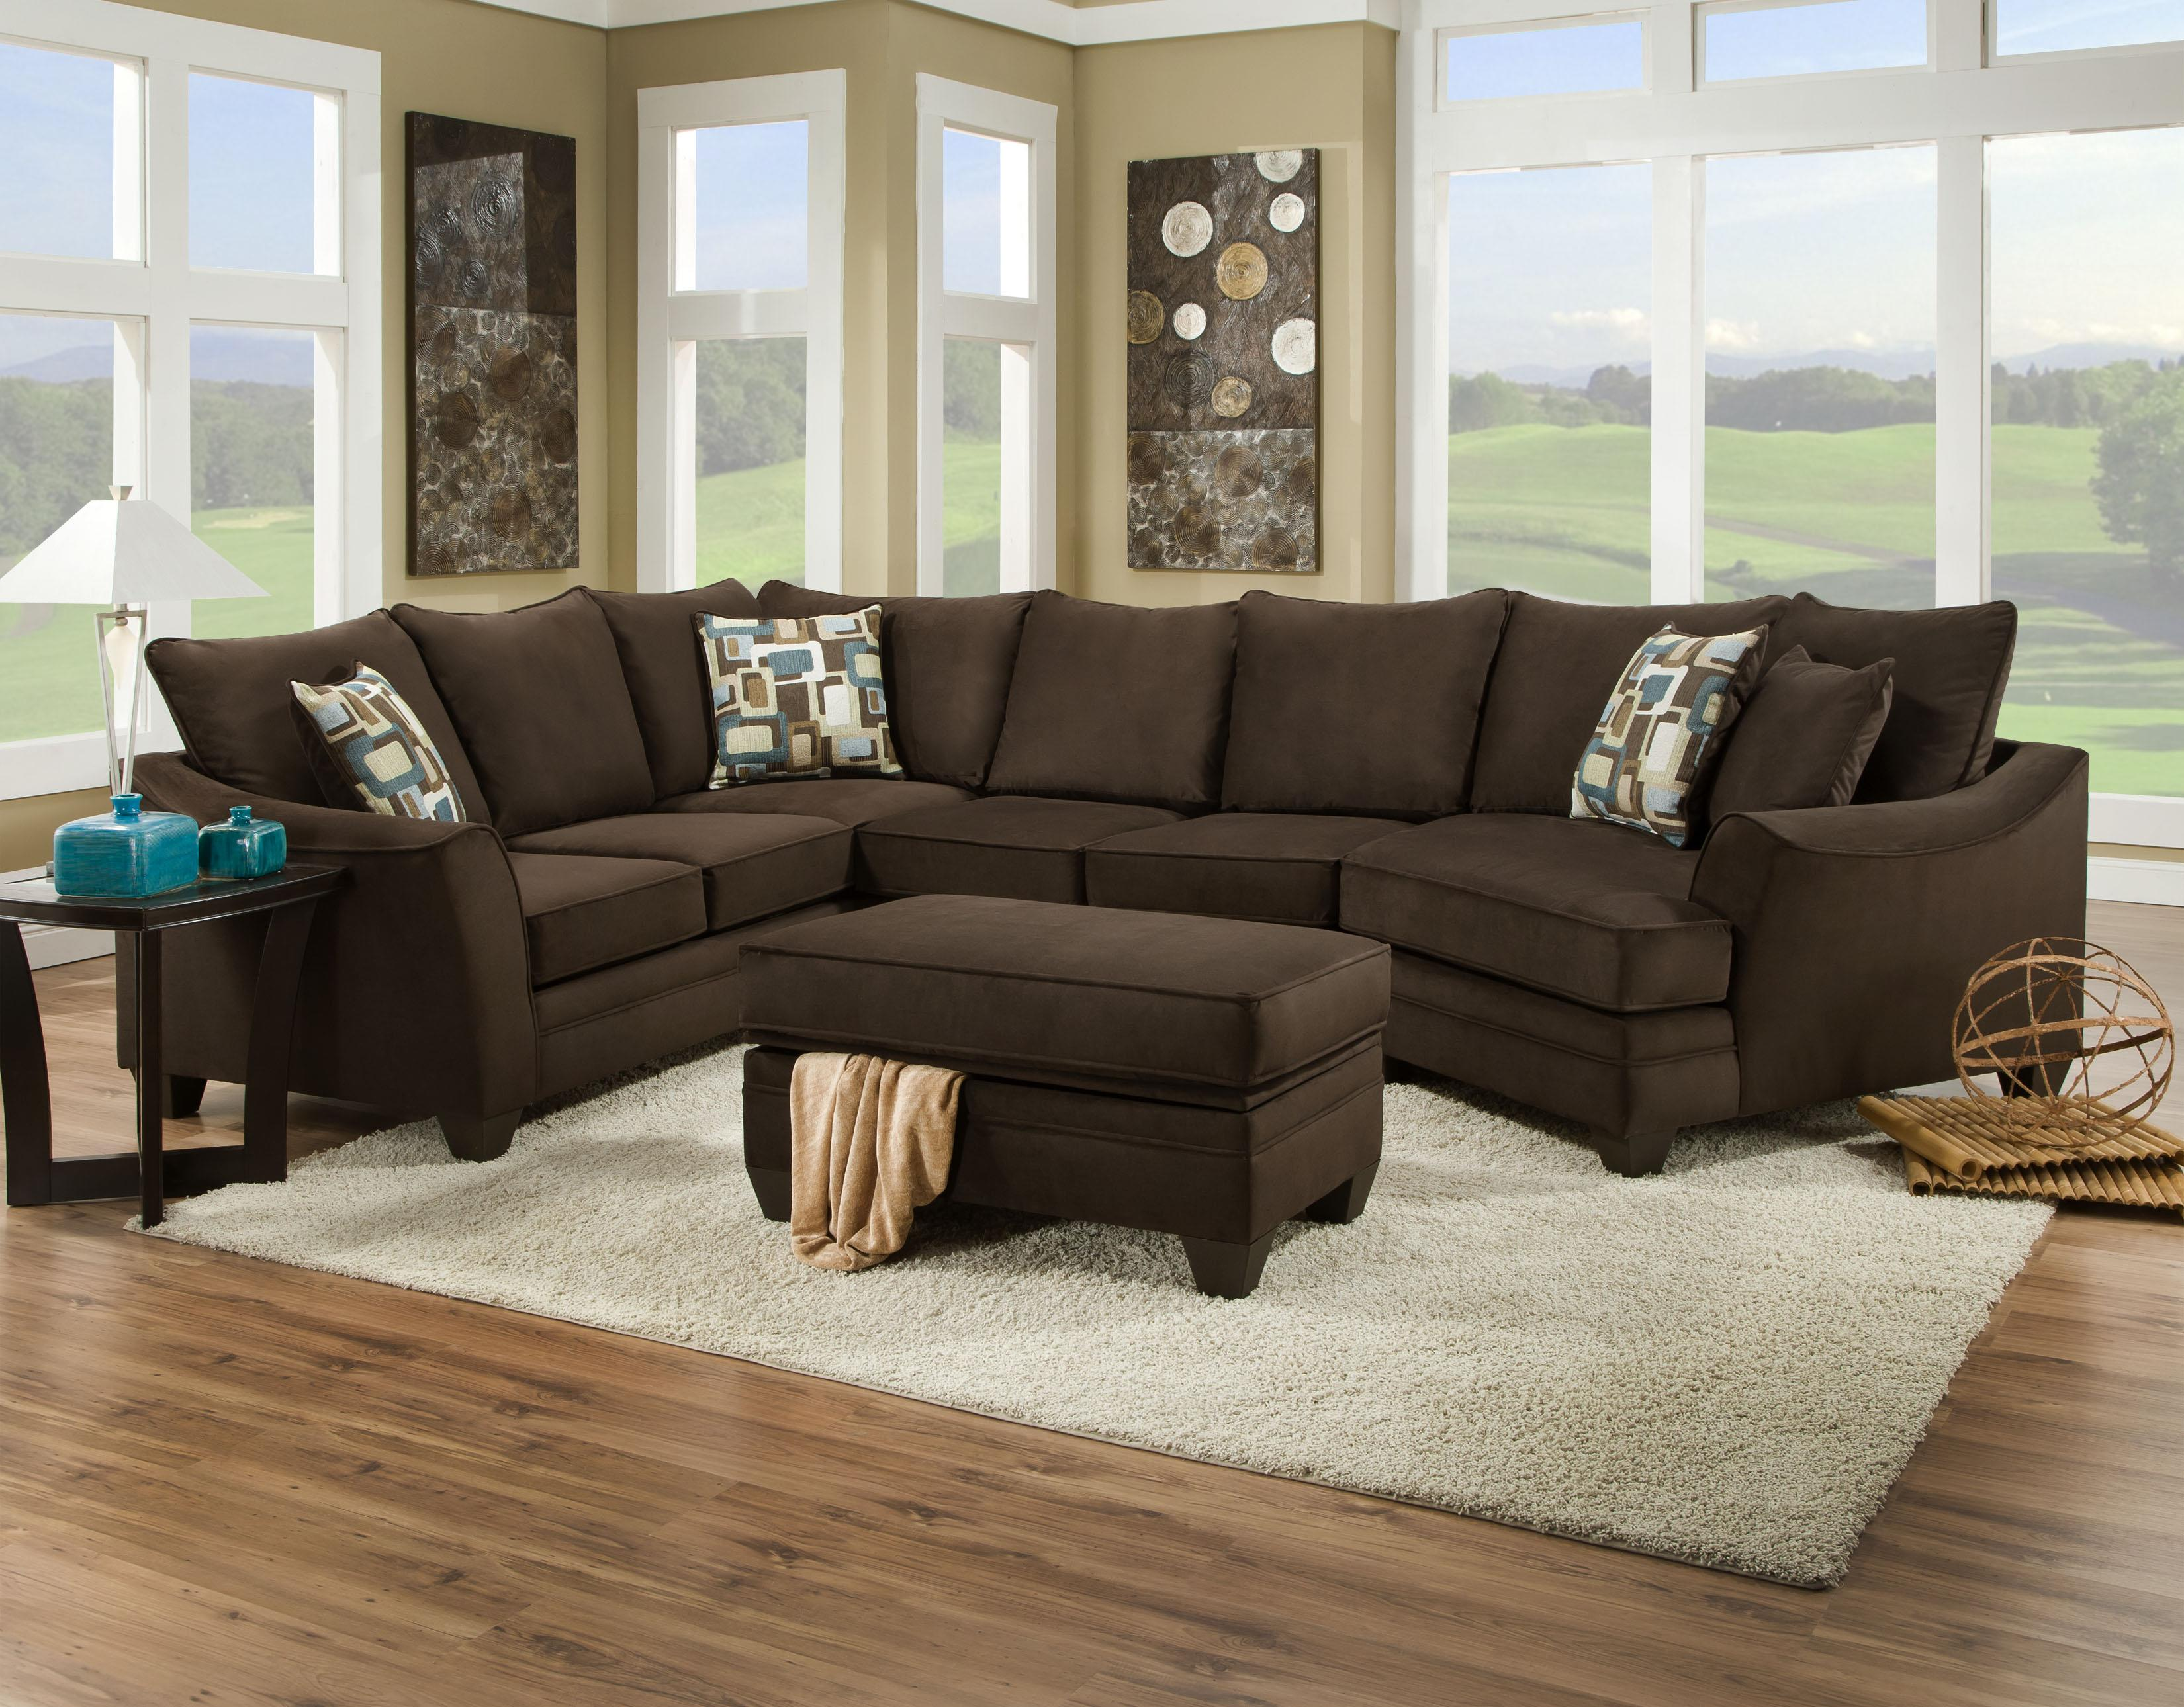 Inspiring wilcox furniture for home furniture with wilcox furniture corpus christi